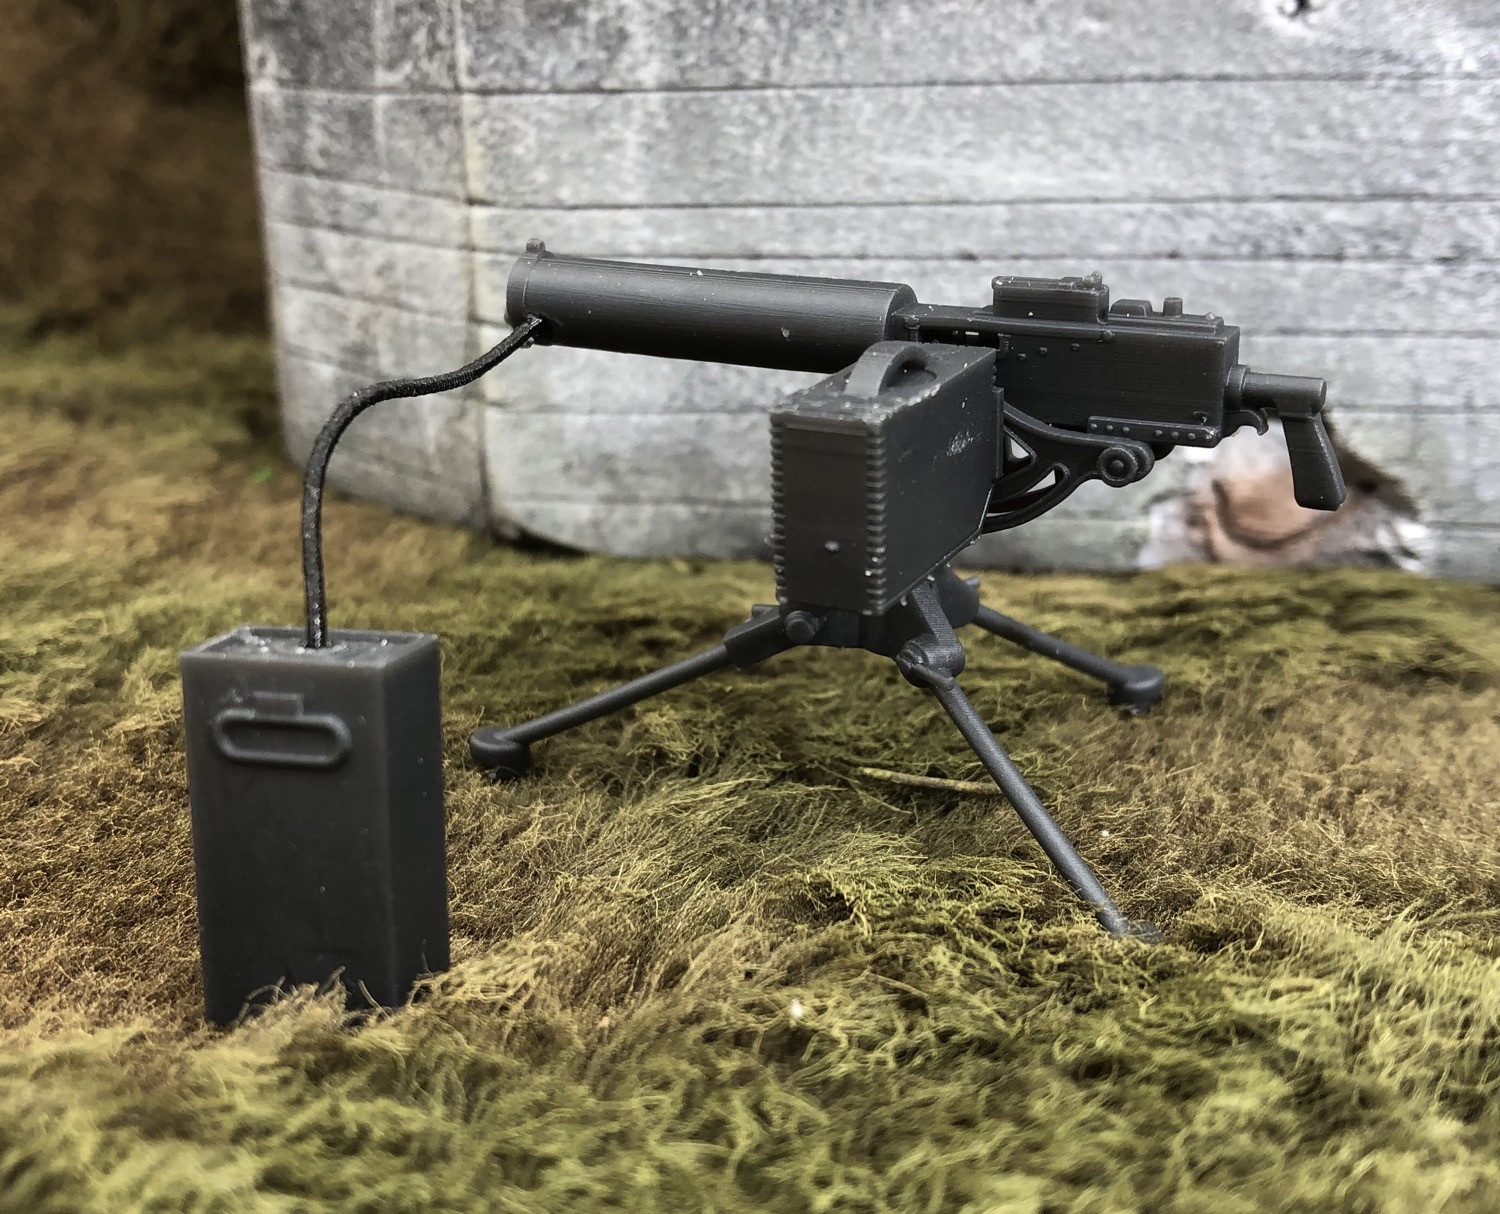 M1917A1 Water Cooled 30 Cal Machine Gun